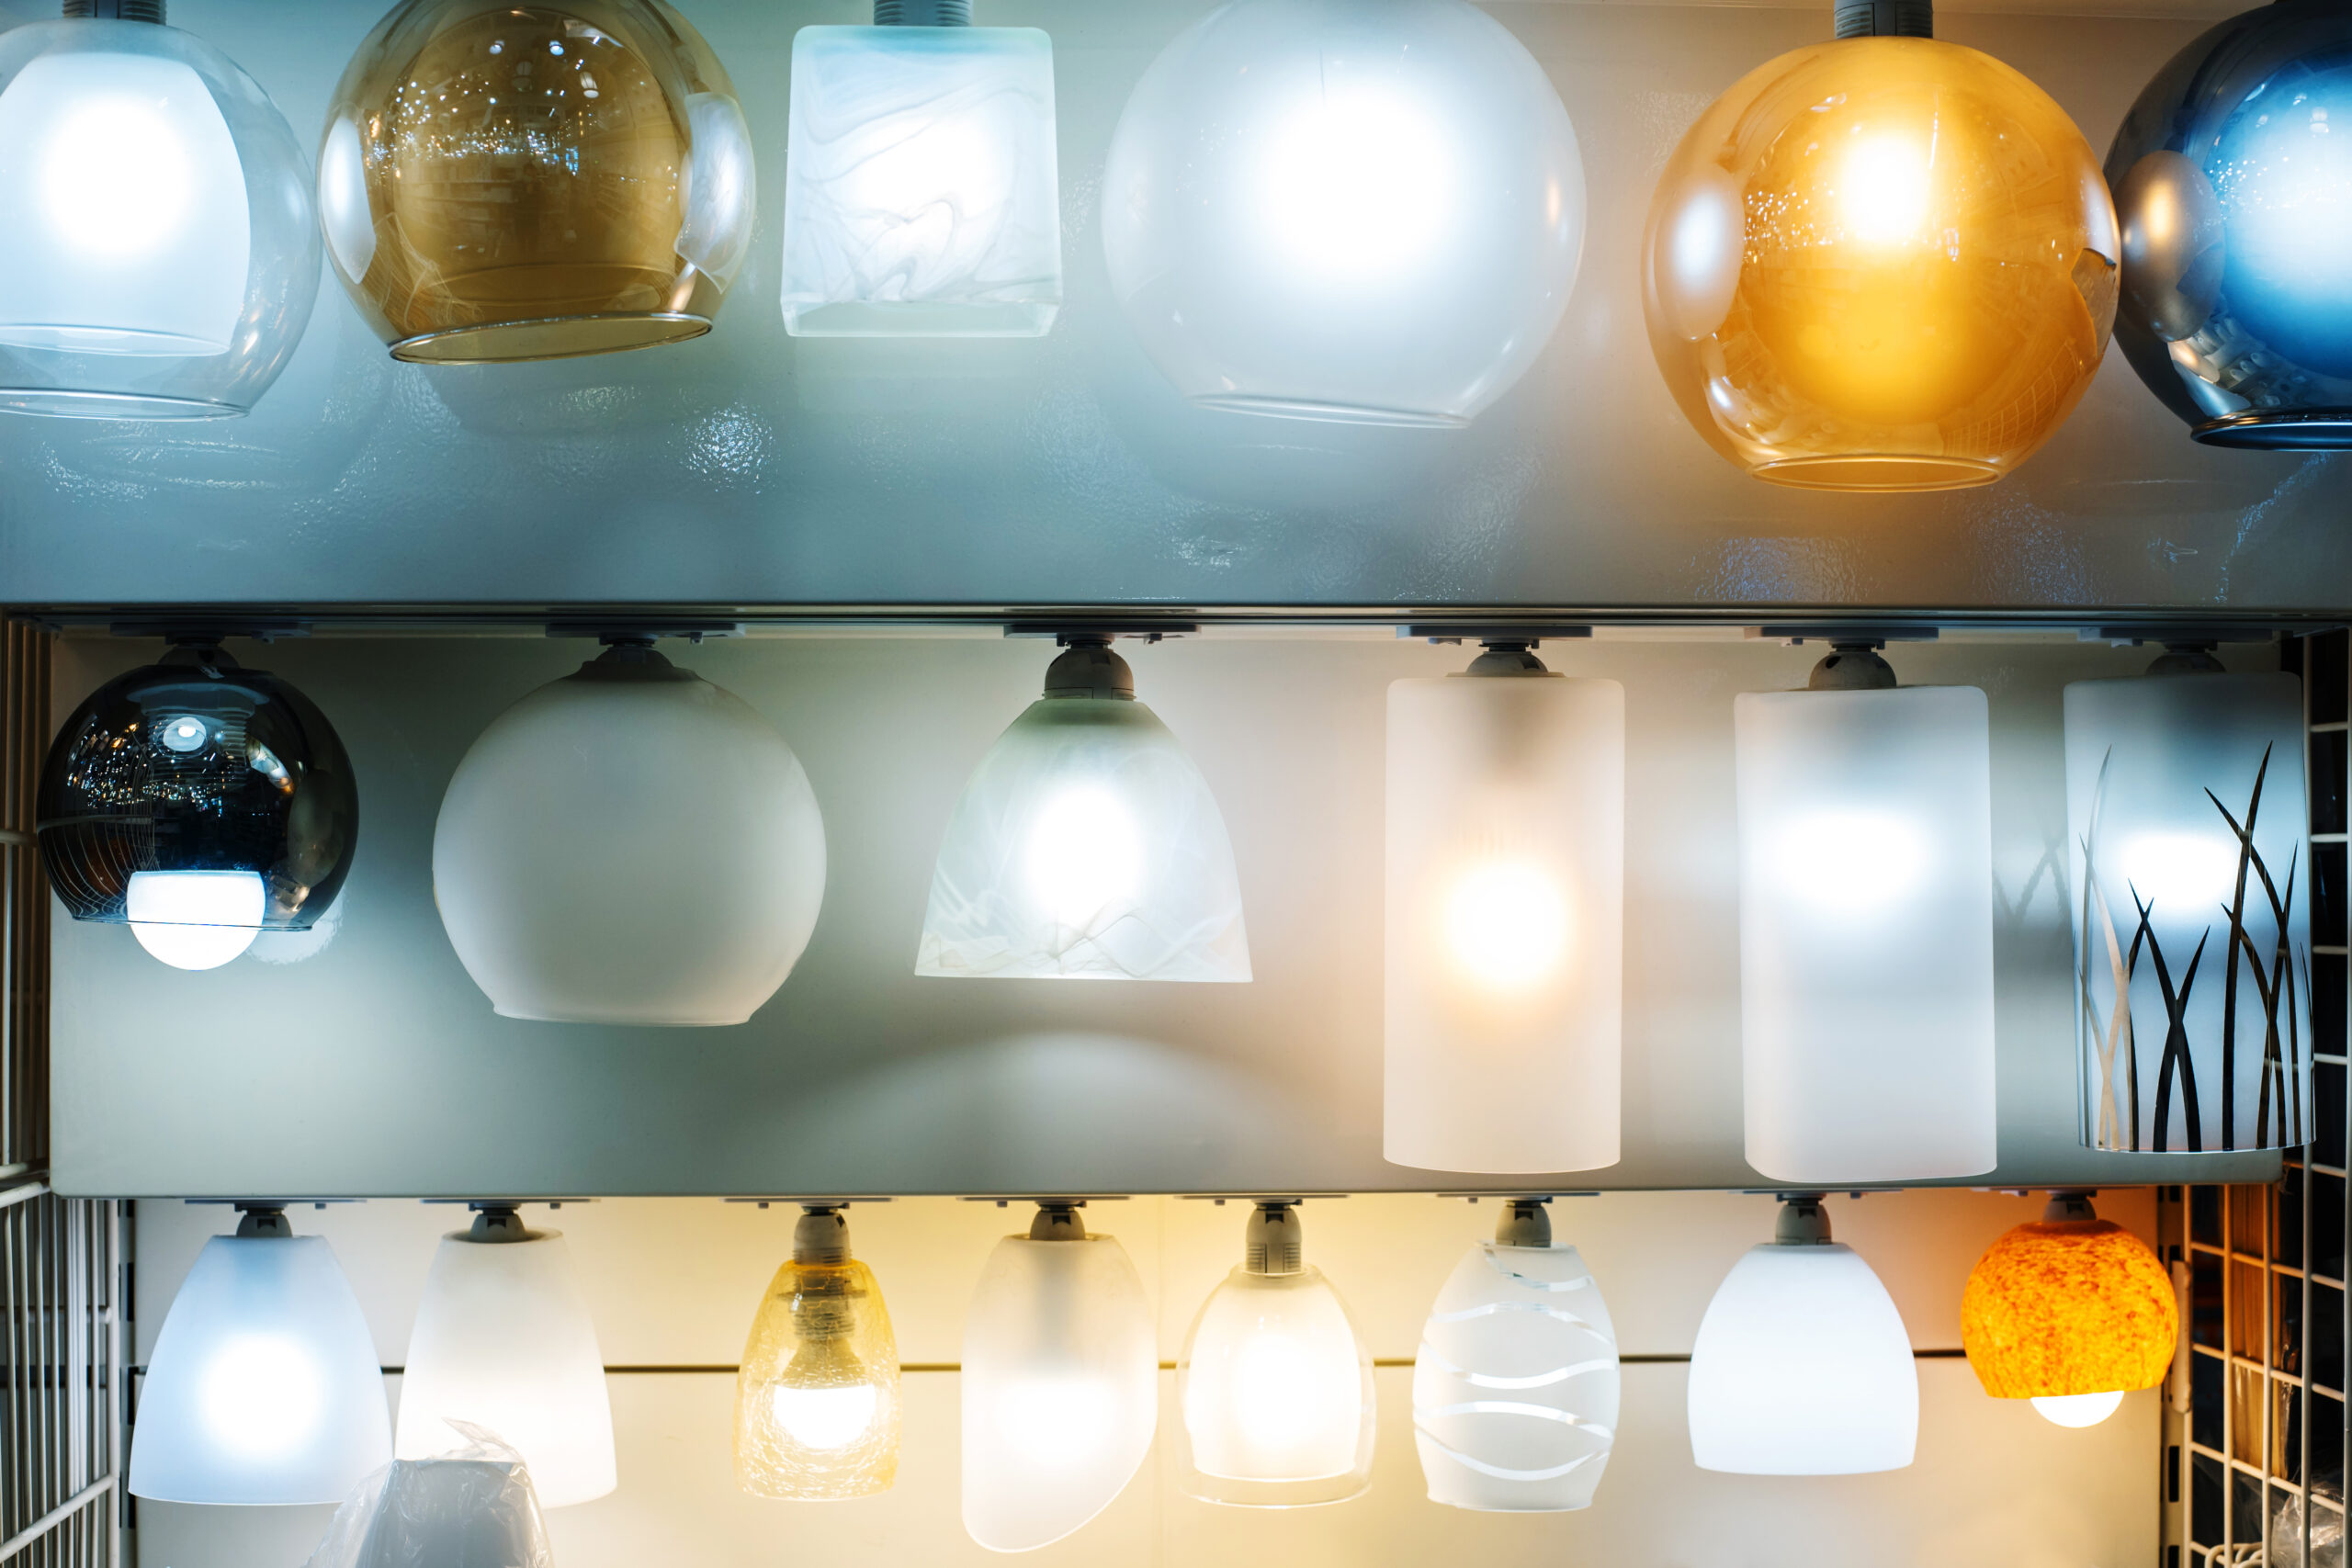 Lighting technologies: Various types of lamps in all shapes